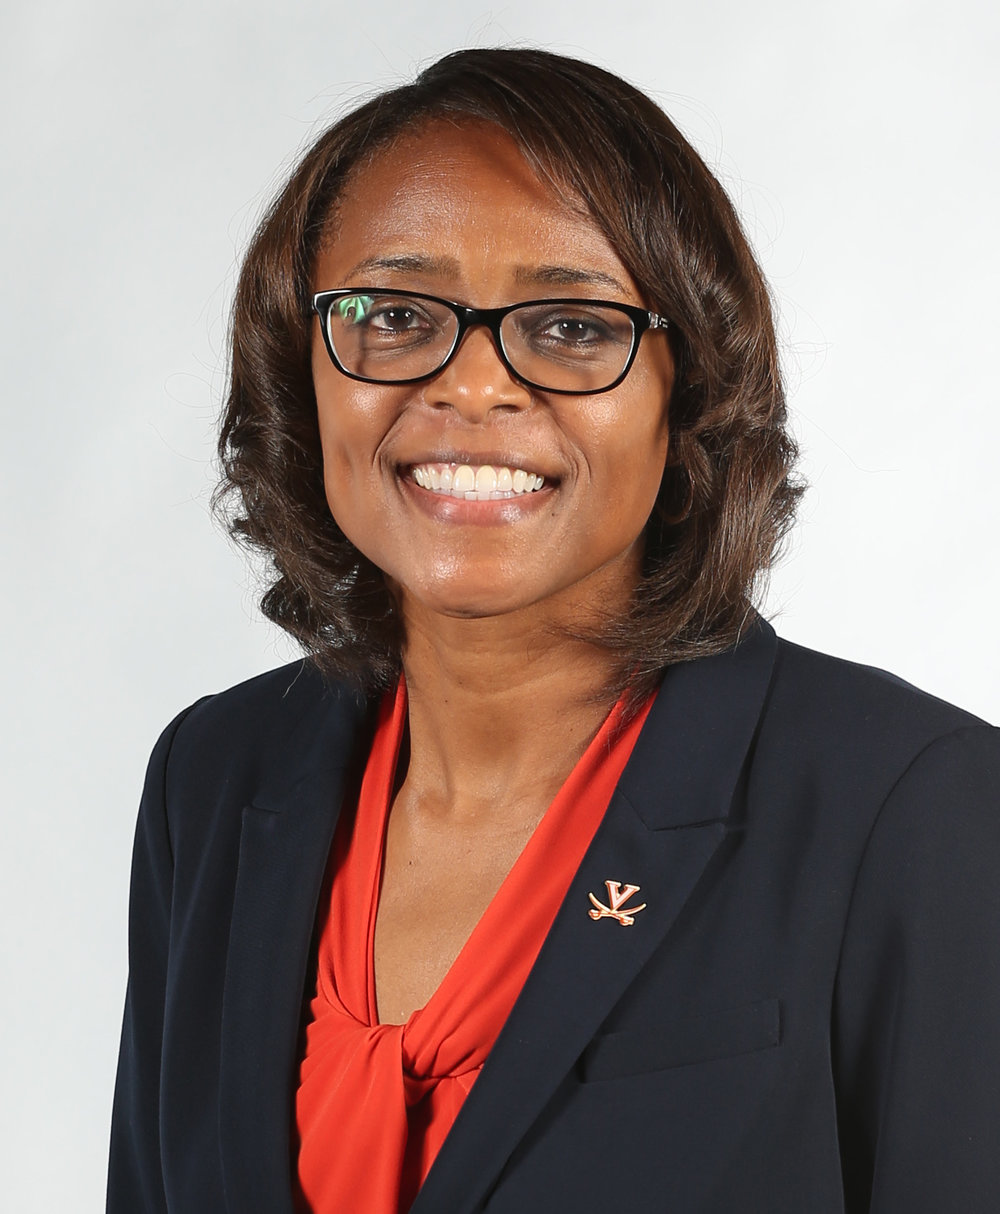 Dr. Carla Williams